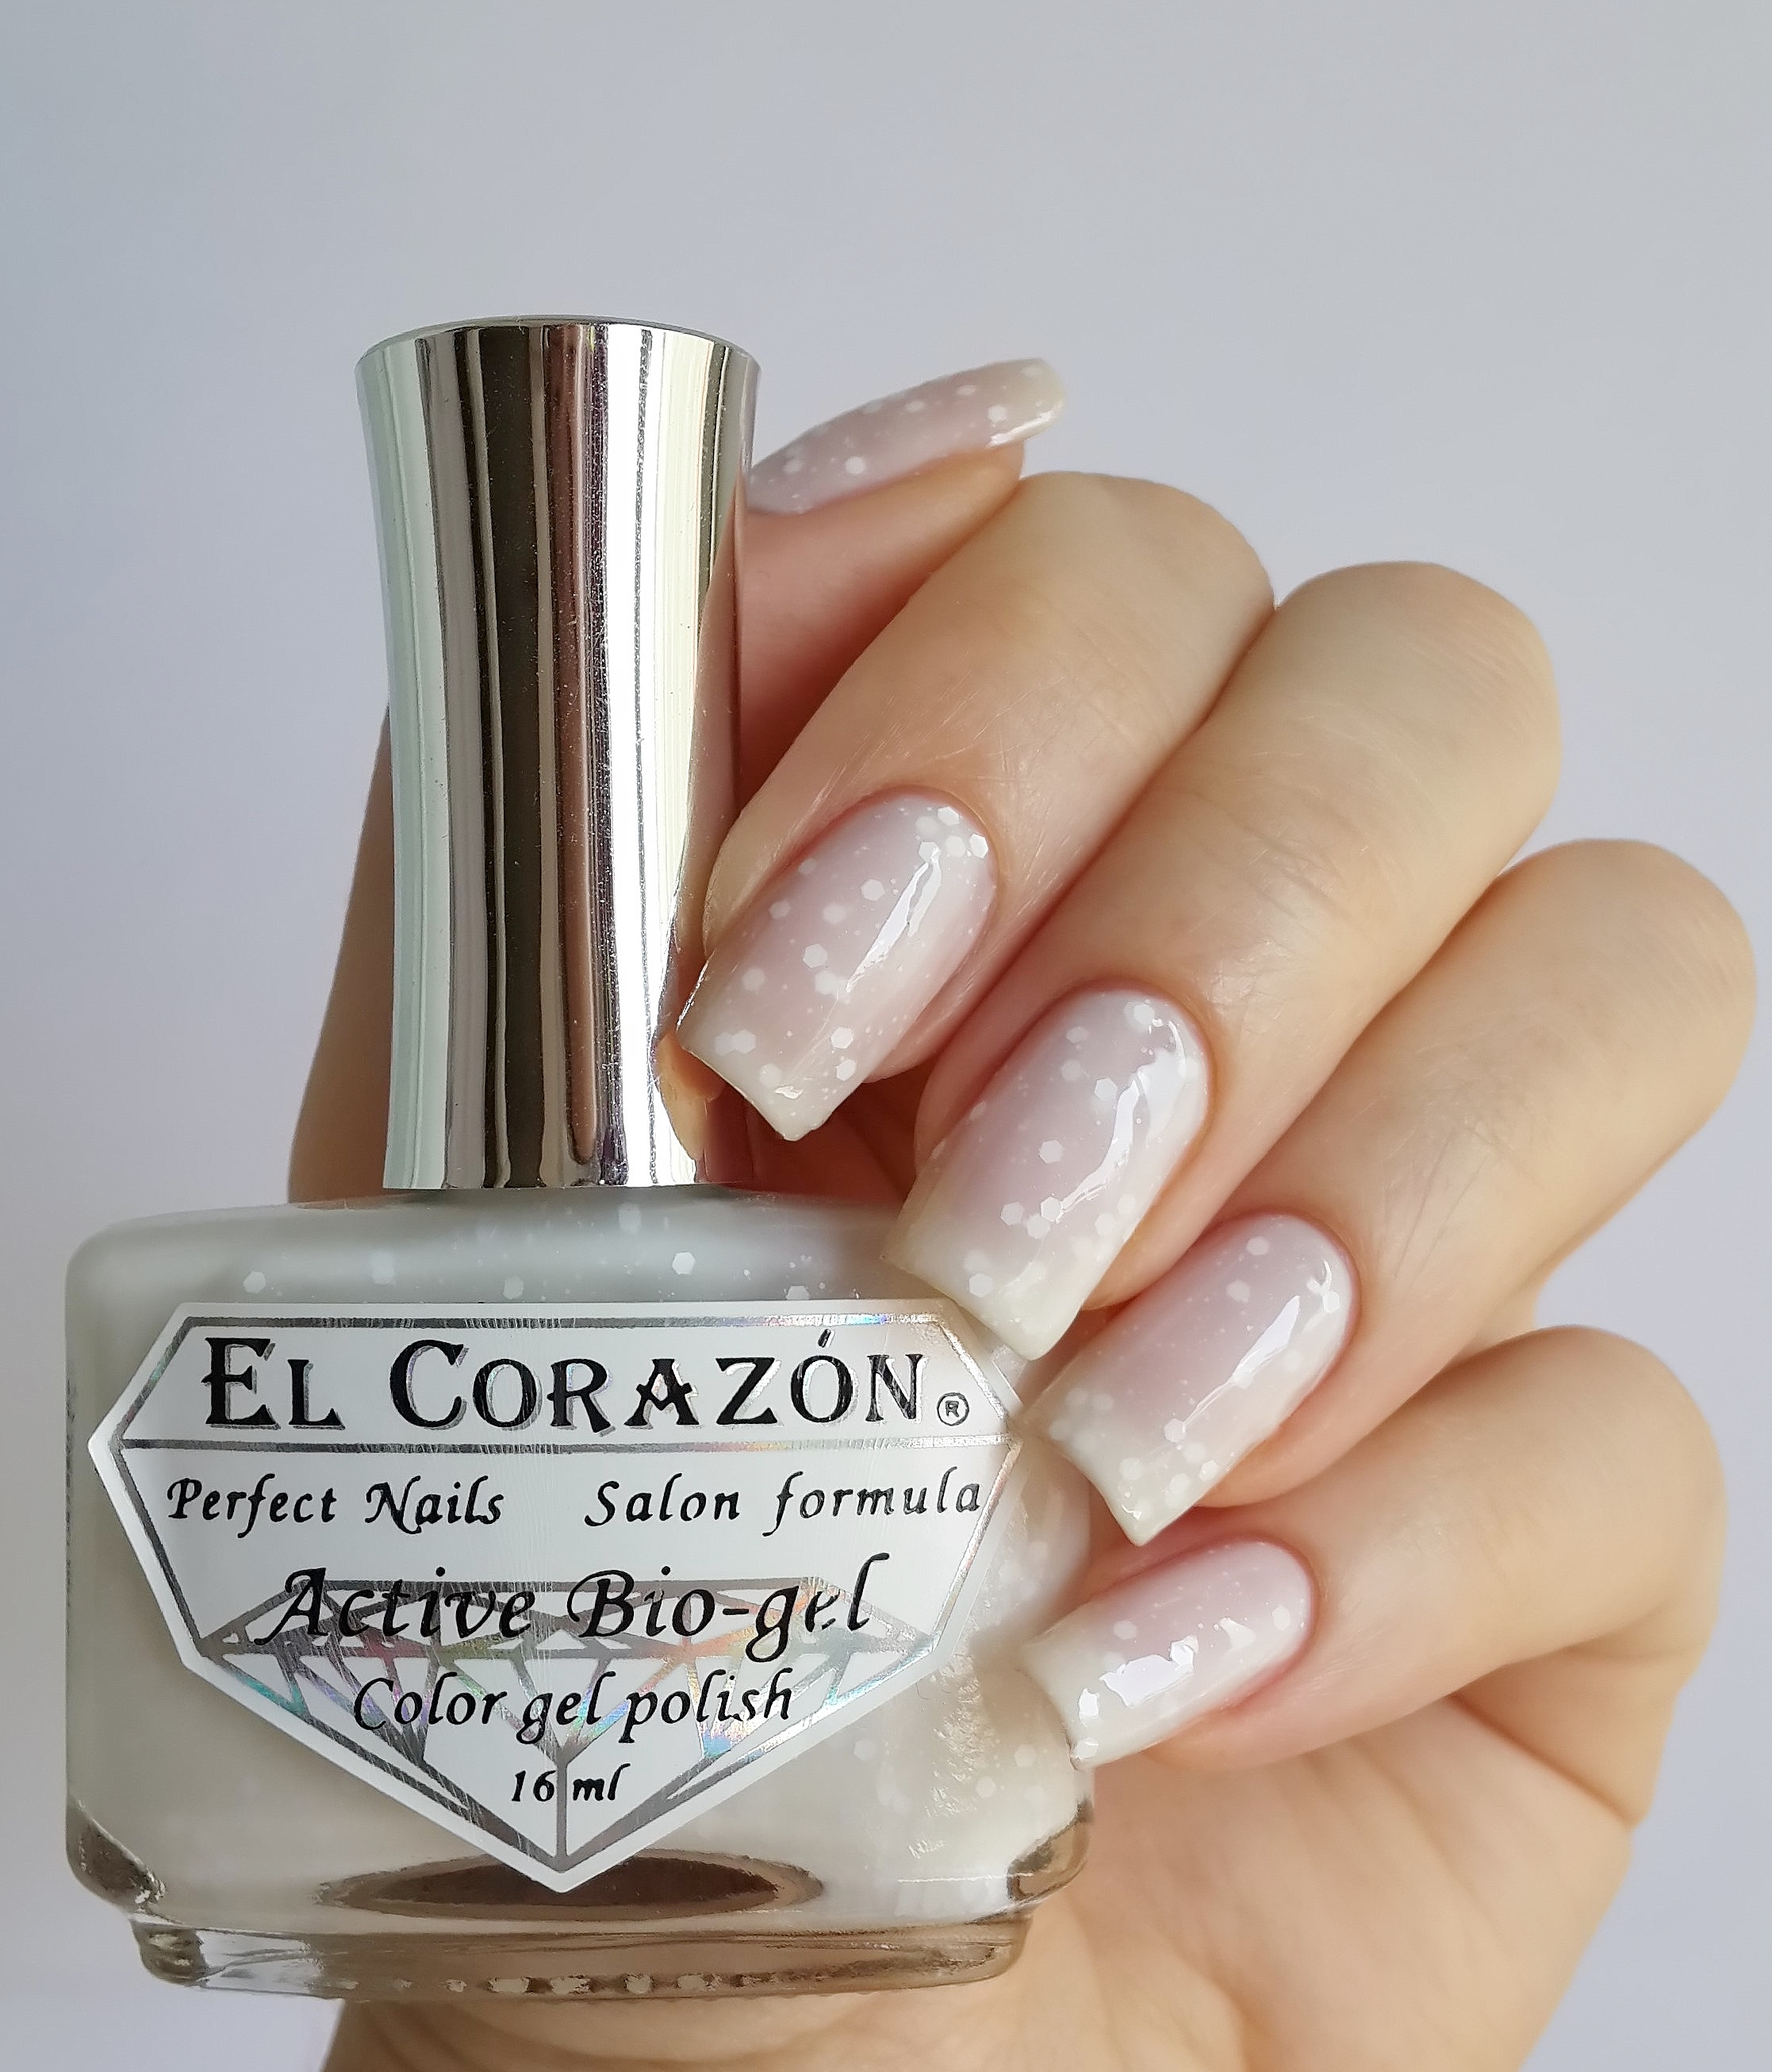 EL Corazon Active Bio-gel Color gel polish Fashion girl on a wedding №423/208